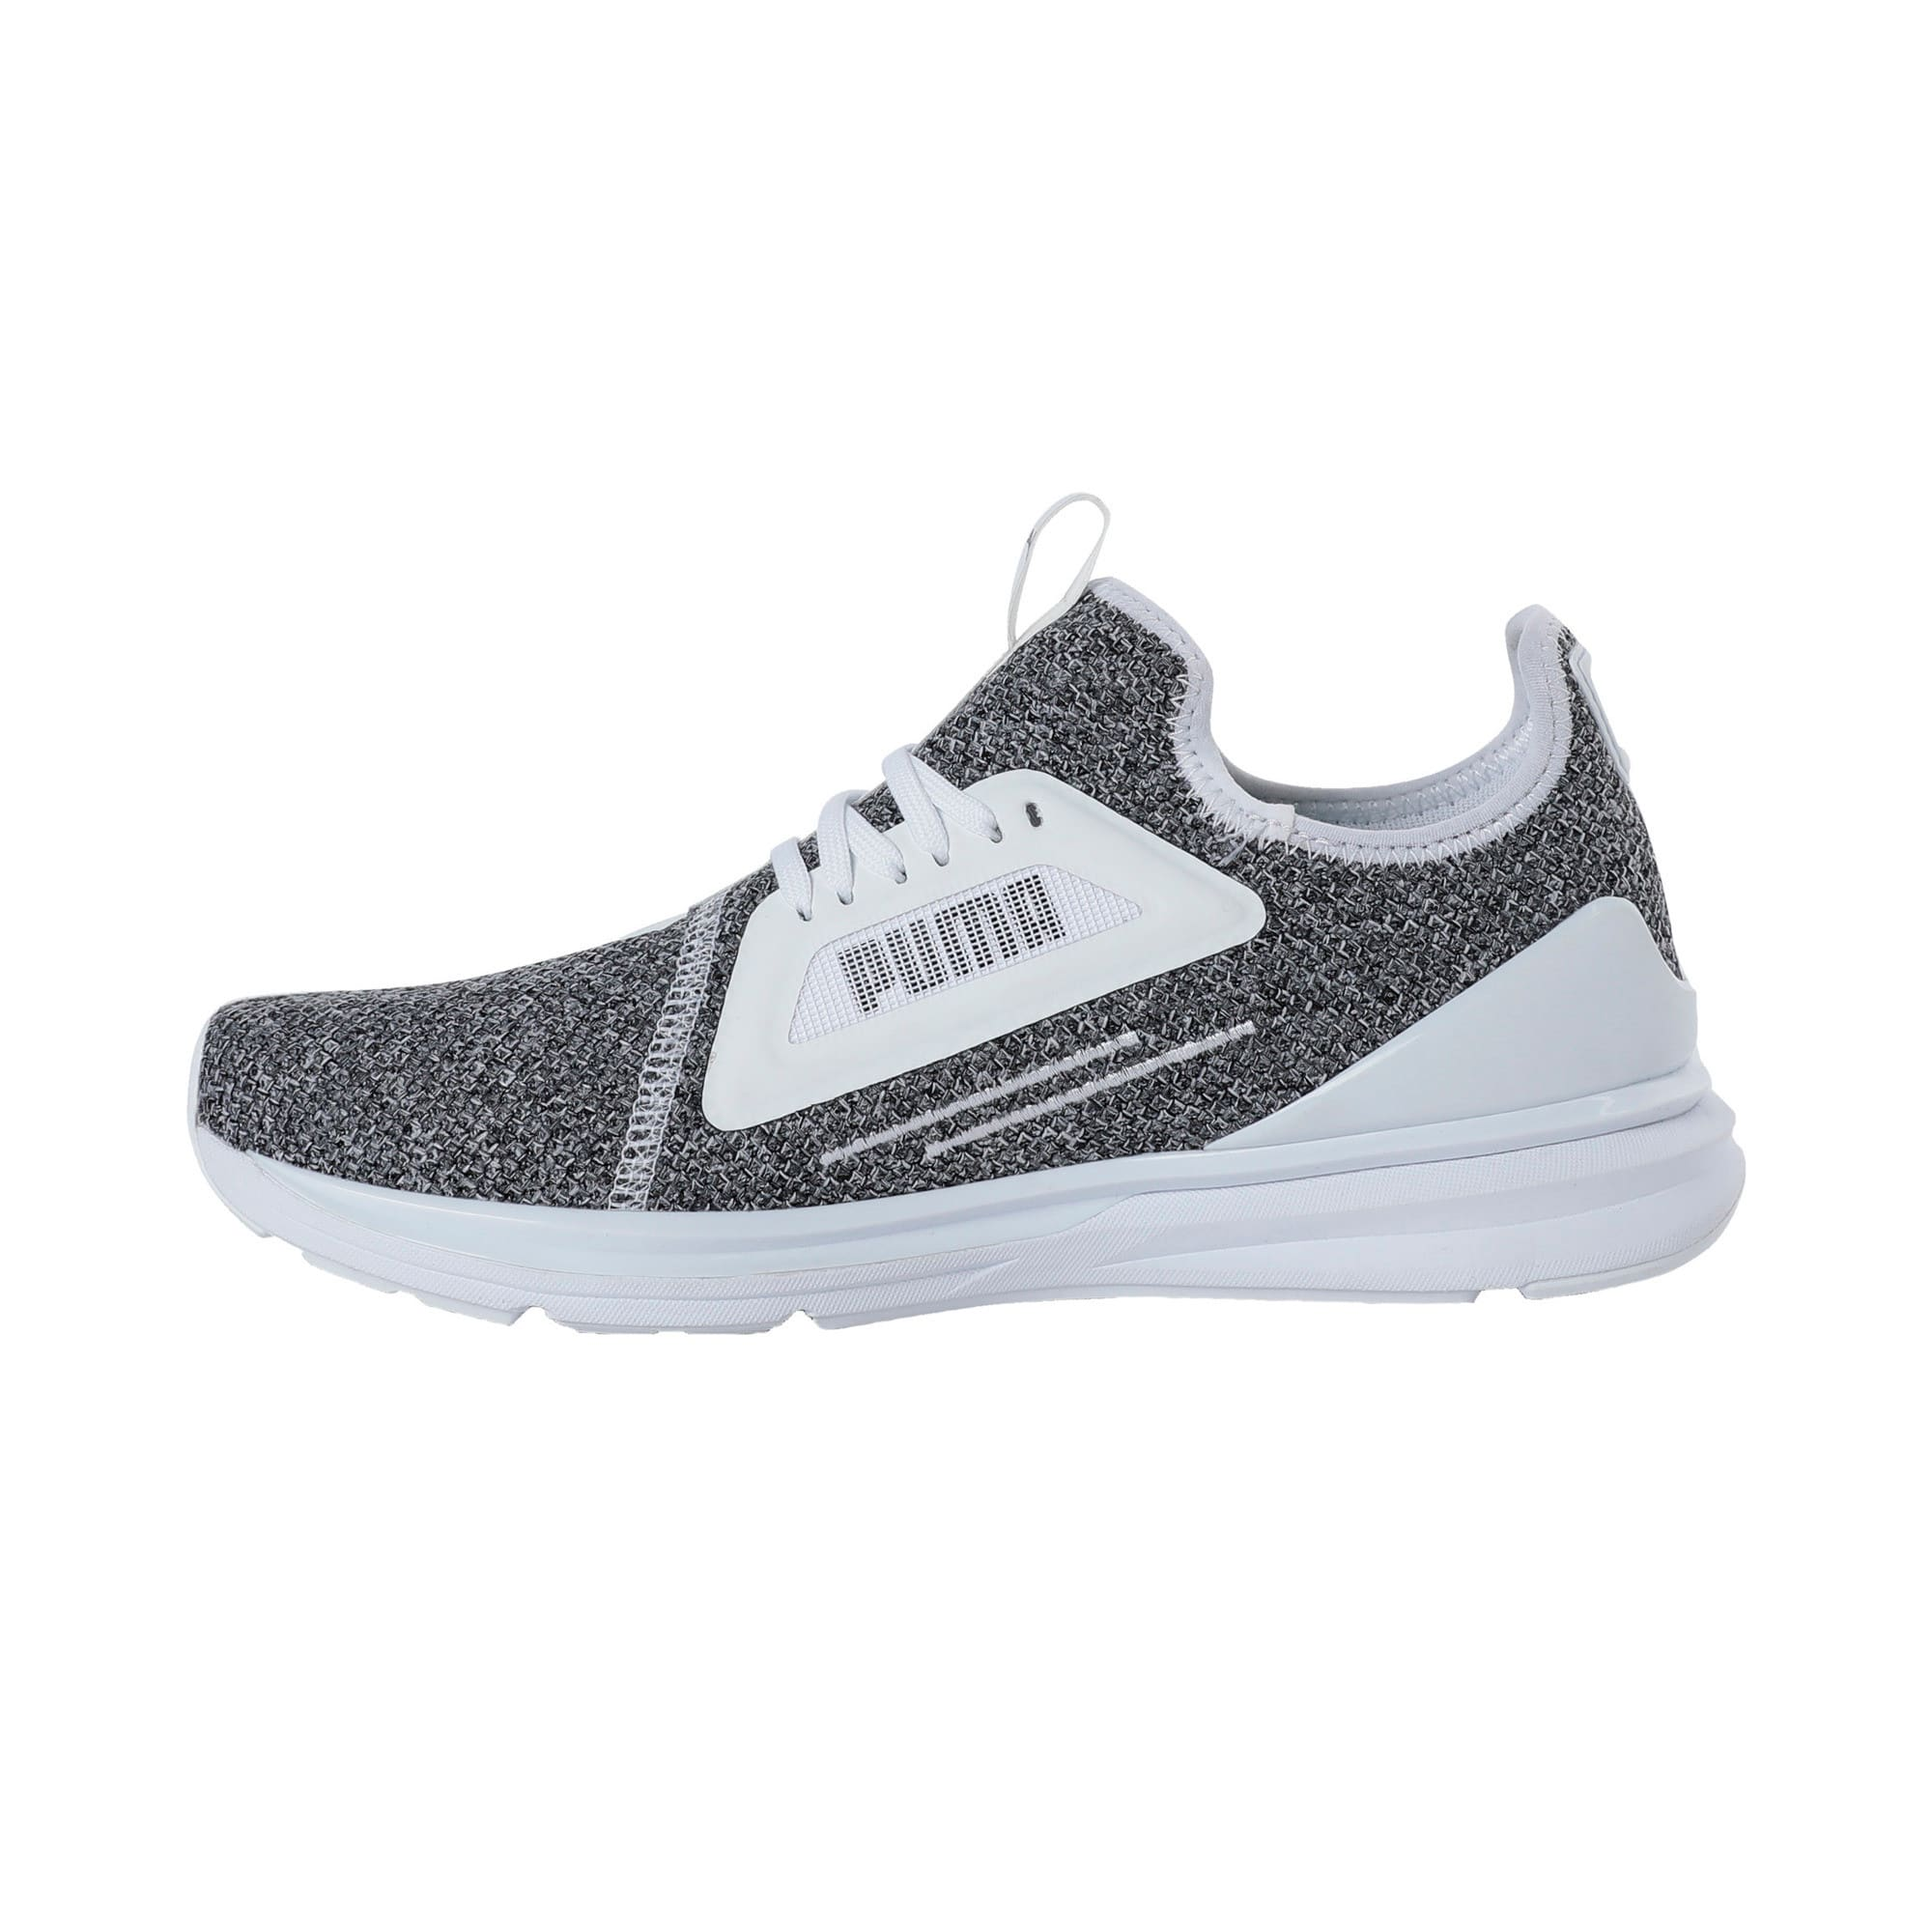 Thumbnail 1 of IGNITE Limitless Lean, Puma White-Puma Black, medium-IND